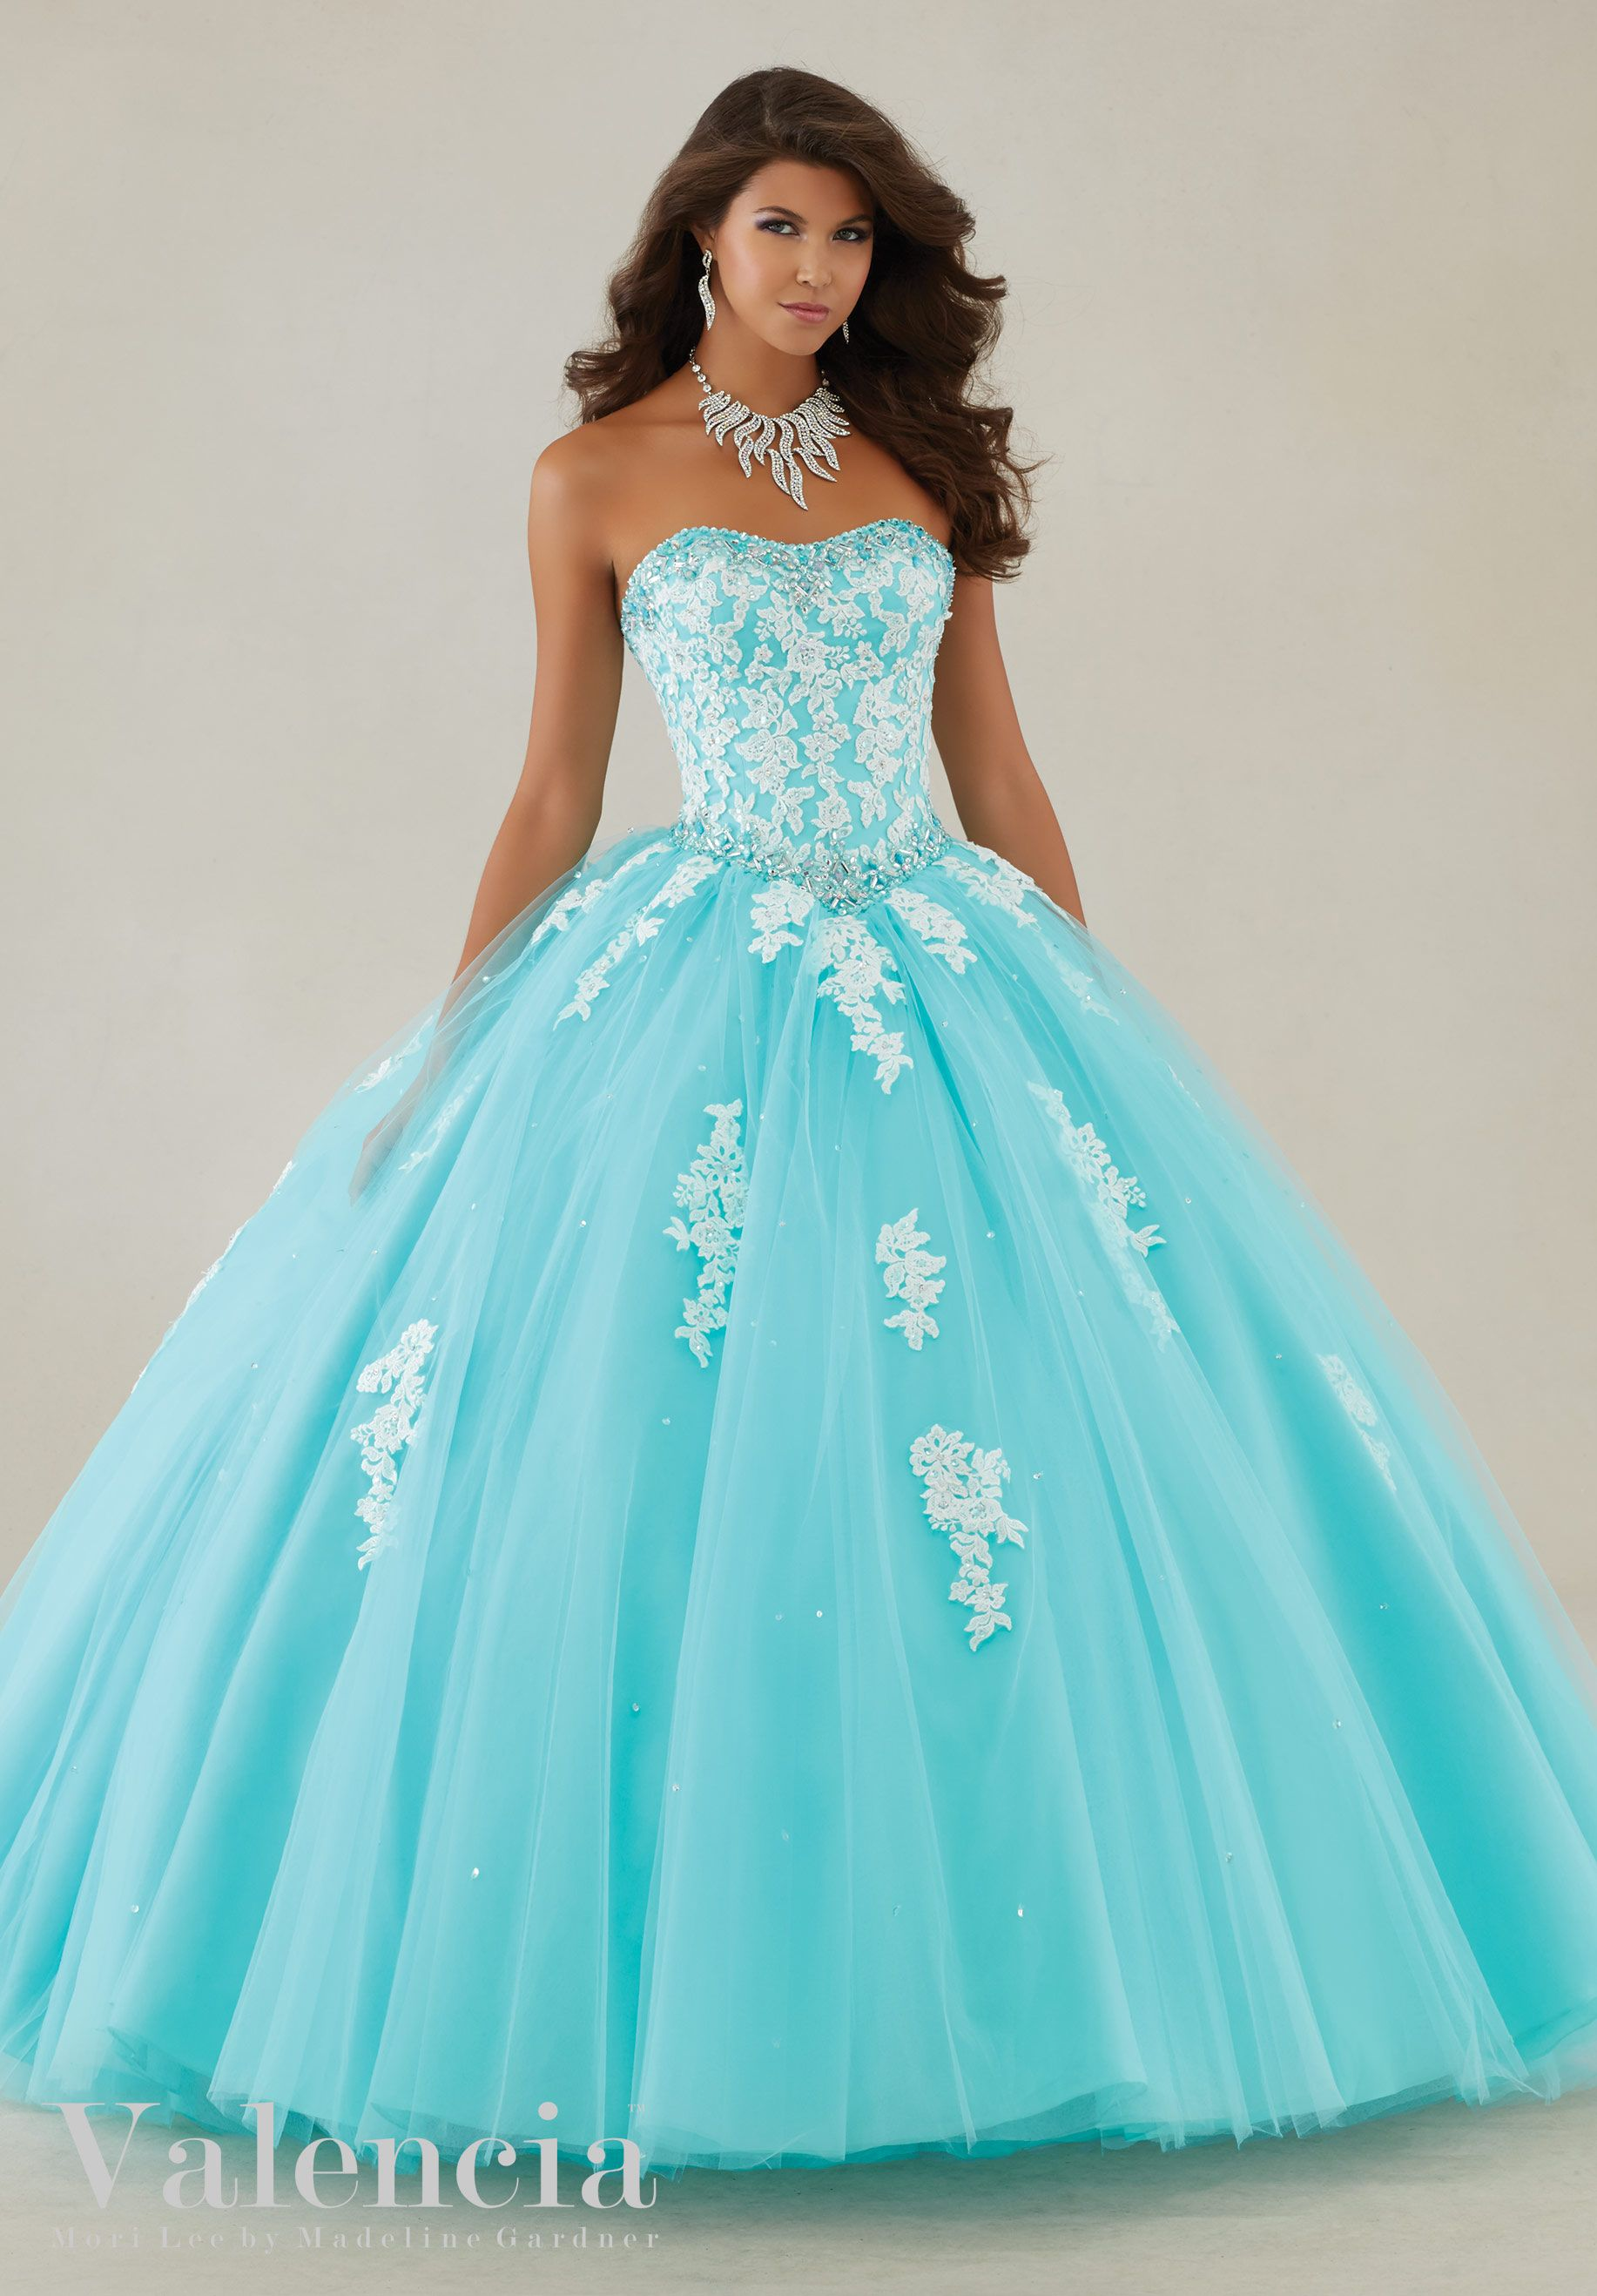 Smart New Quinceanera Dresses Appliques Bow Organza Vestido De Debutante Para 15 Anos Strapless Cheap Ball Gown Prom Dresses Weddings & Events